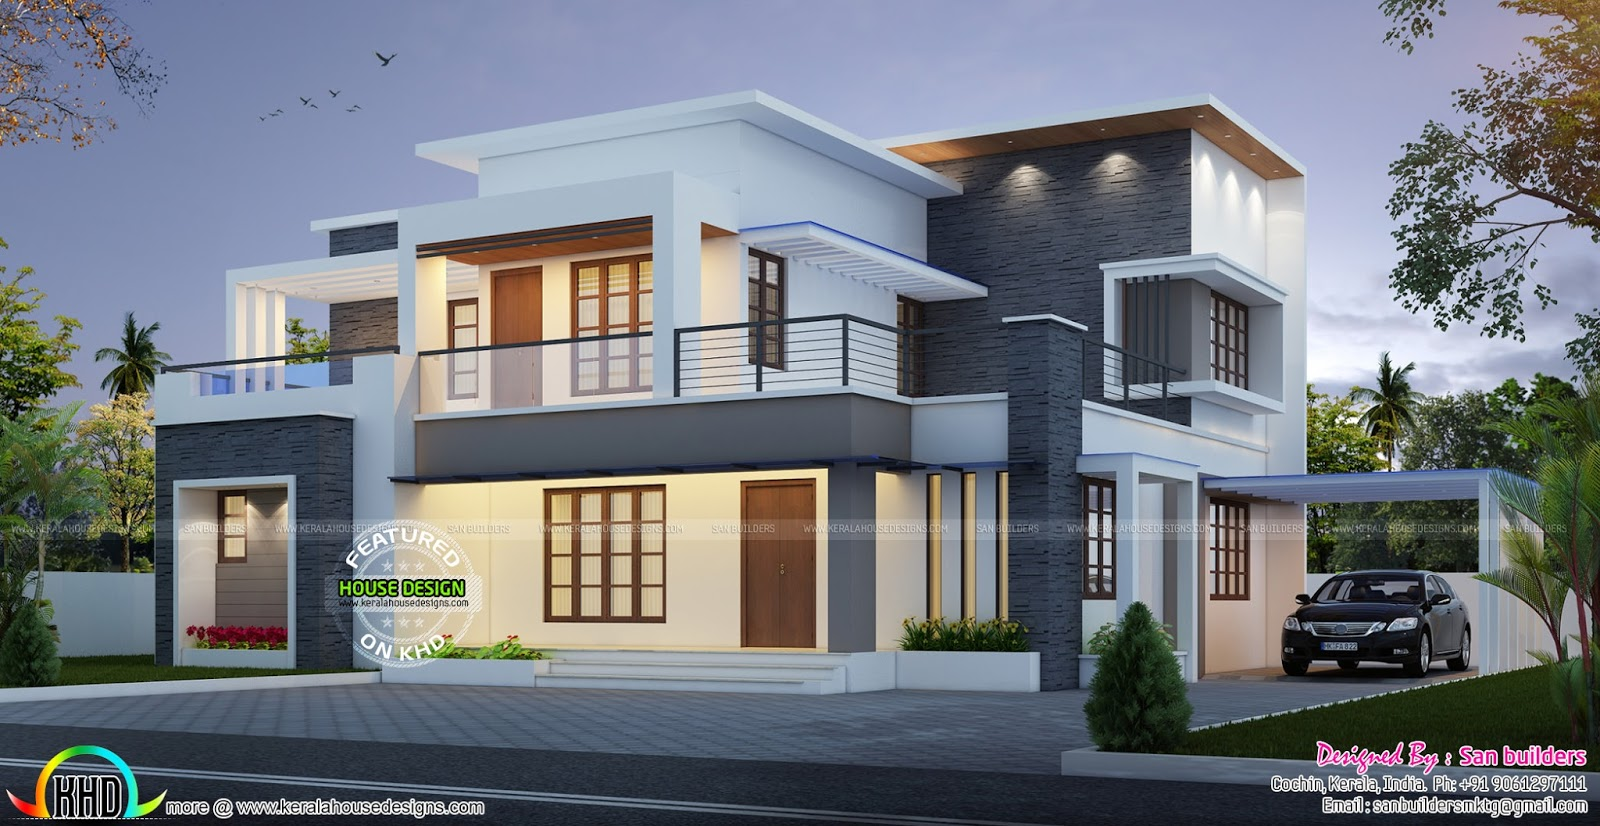 House plan and elevation by san builders kerala home for Contemporary indian house elevations